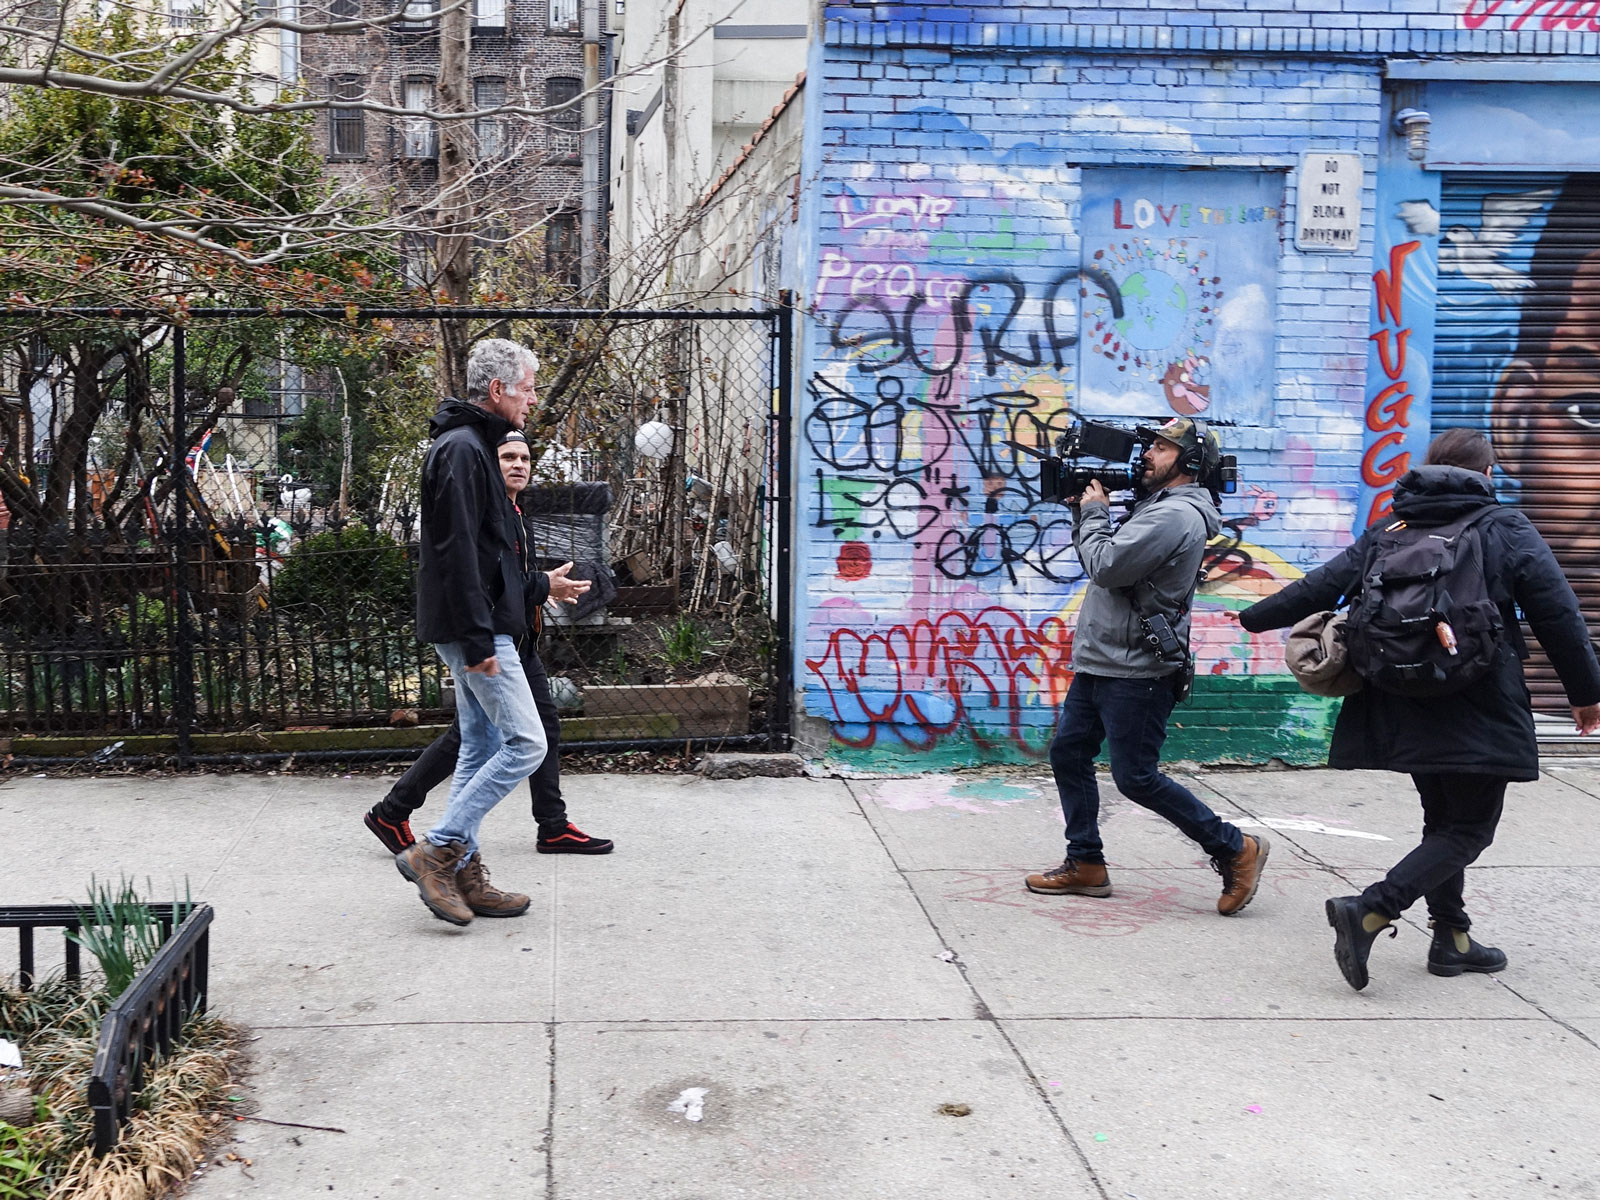 5 Things We Learned from the Behind-the-Scenes Episode of 'Anthony Bourdain Parts Unknown'